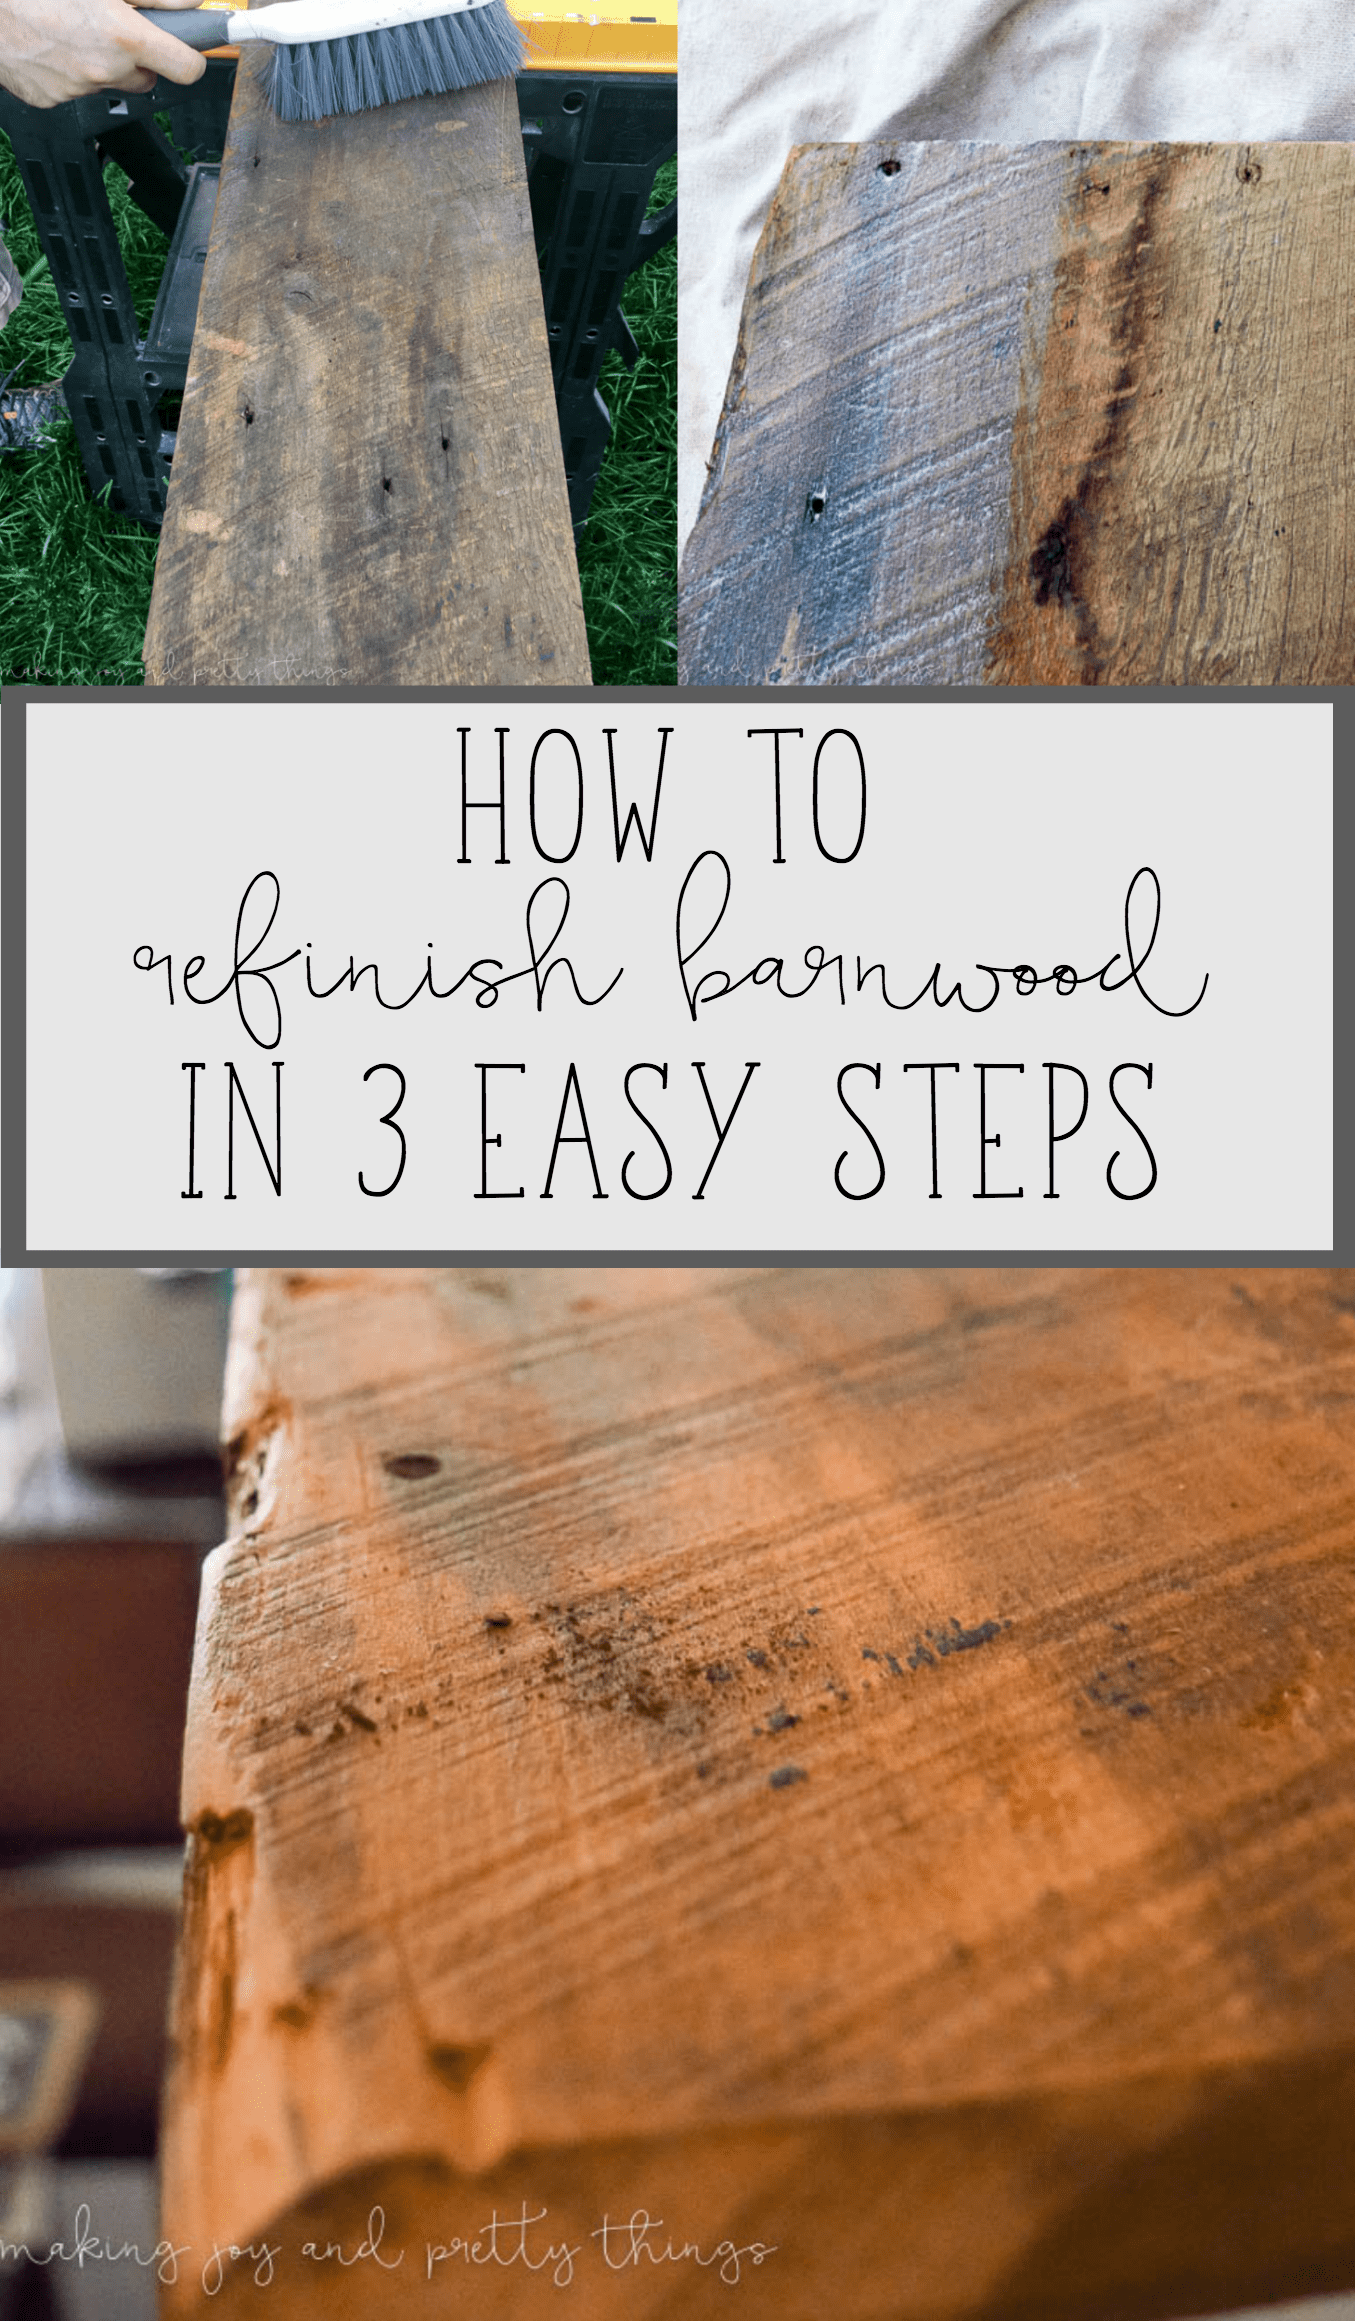 How to clean and refinish barnwood in 3 easy steps. Great tutorial on how to get the farmhouse look by cleaning up some reclaimed wood or barnwood